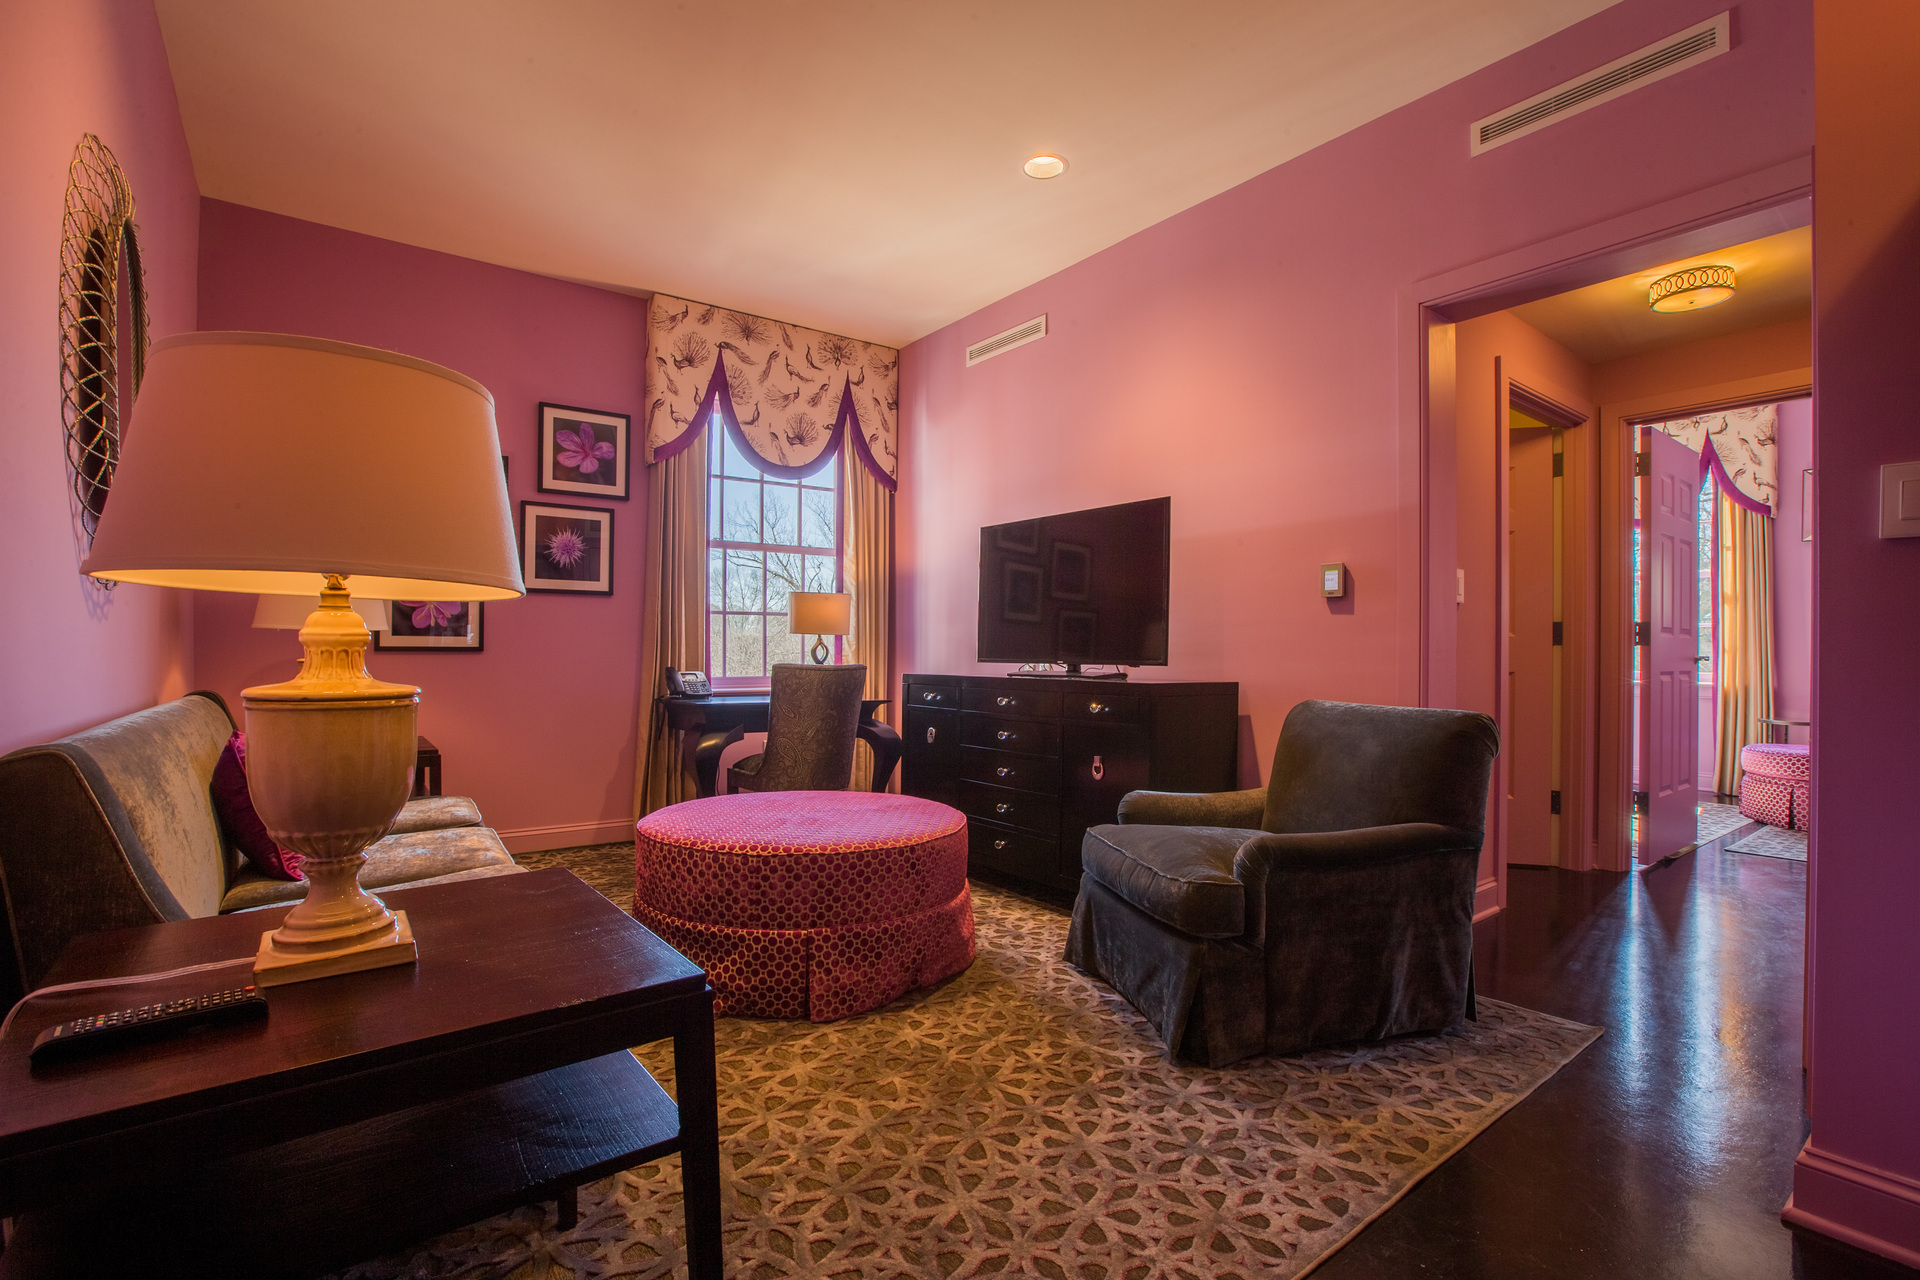 Watch a good movie in this pink sitting room at this bed and breakfast.    The hotel owners made sure to take your comfort to heart with installing sound-reducing drywall, by QuietRock so you don't have to worry about listening to other guests.